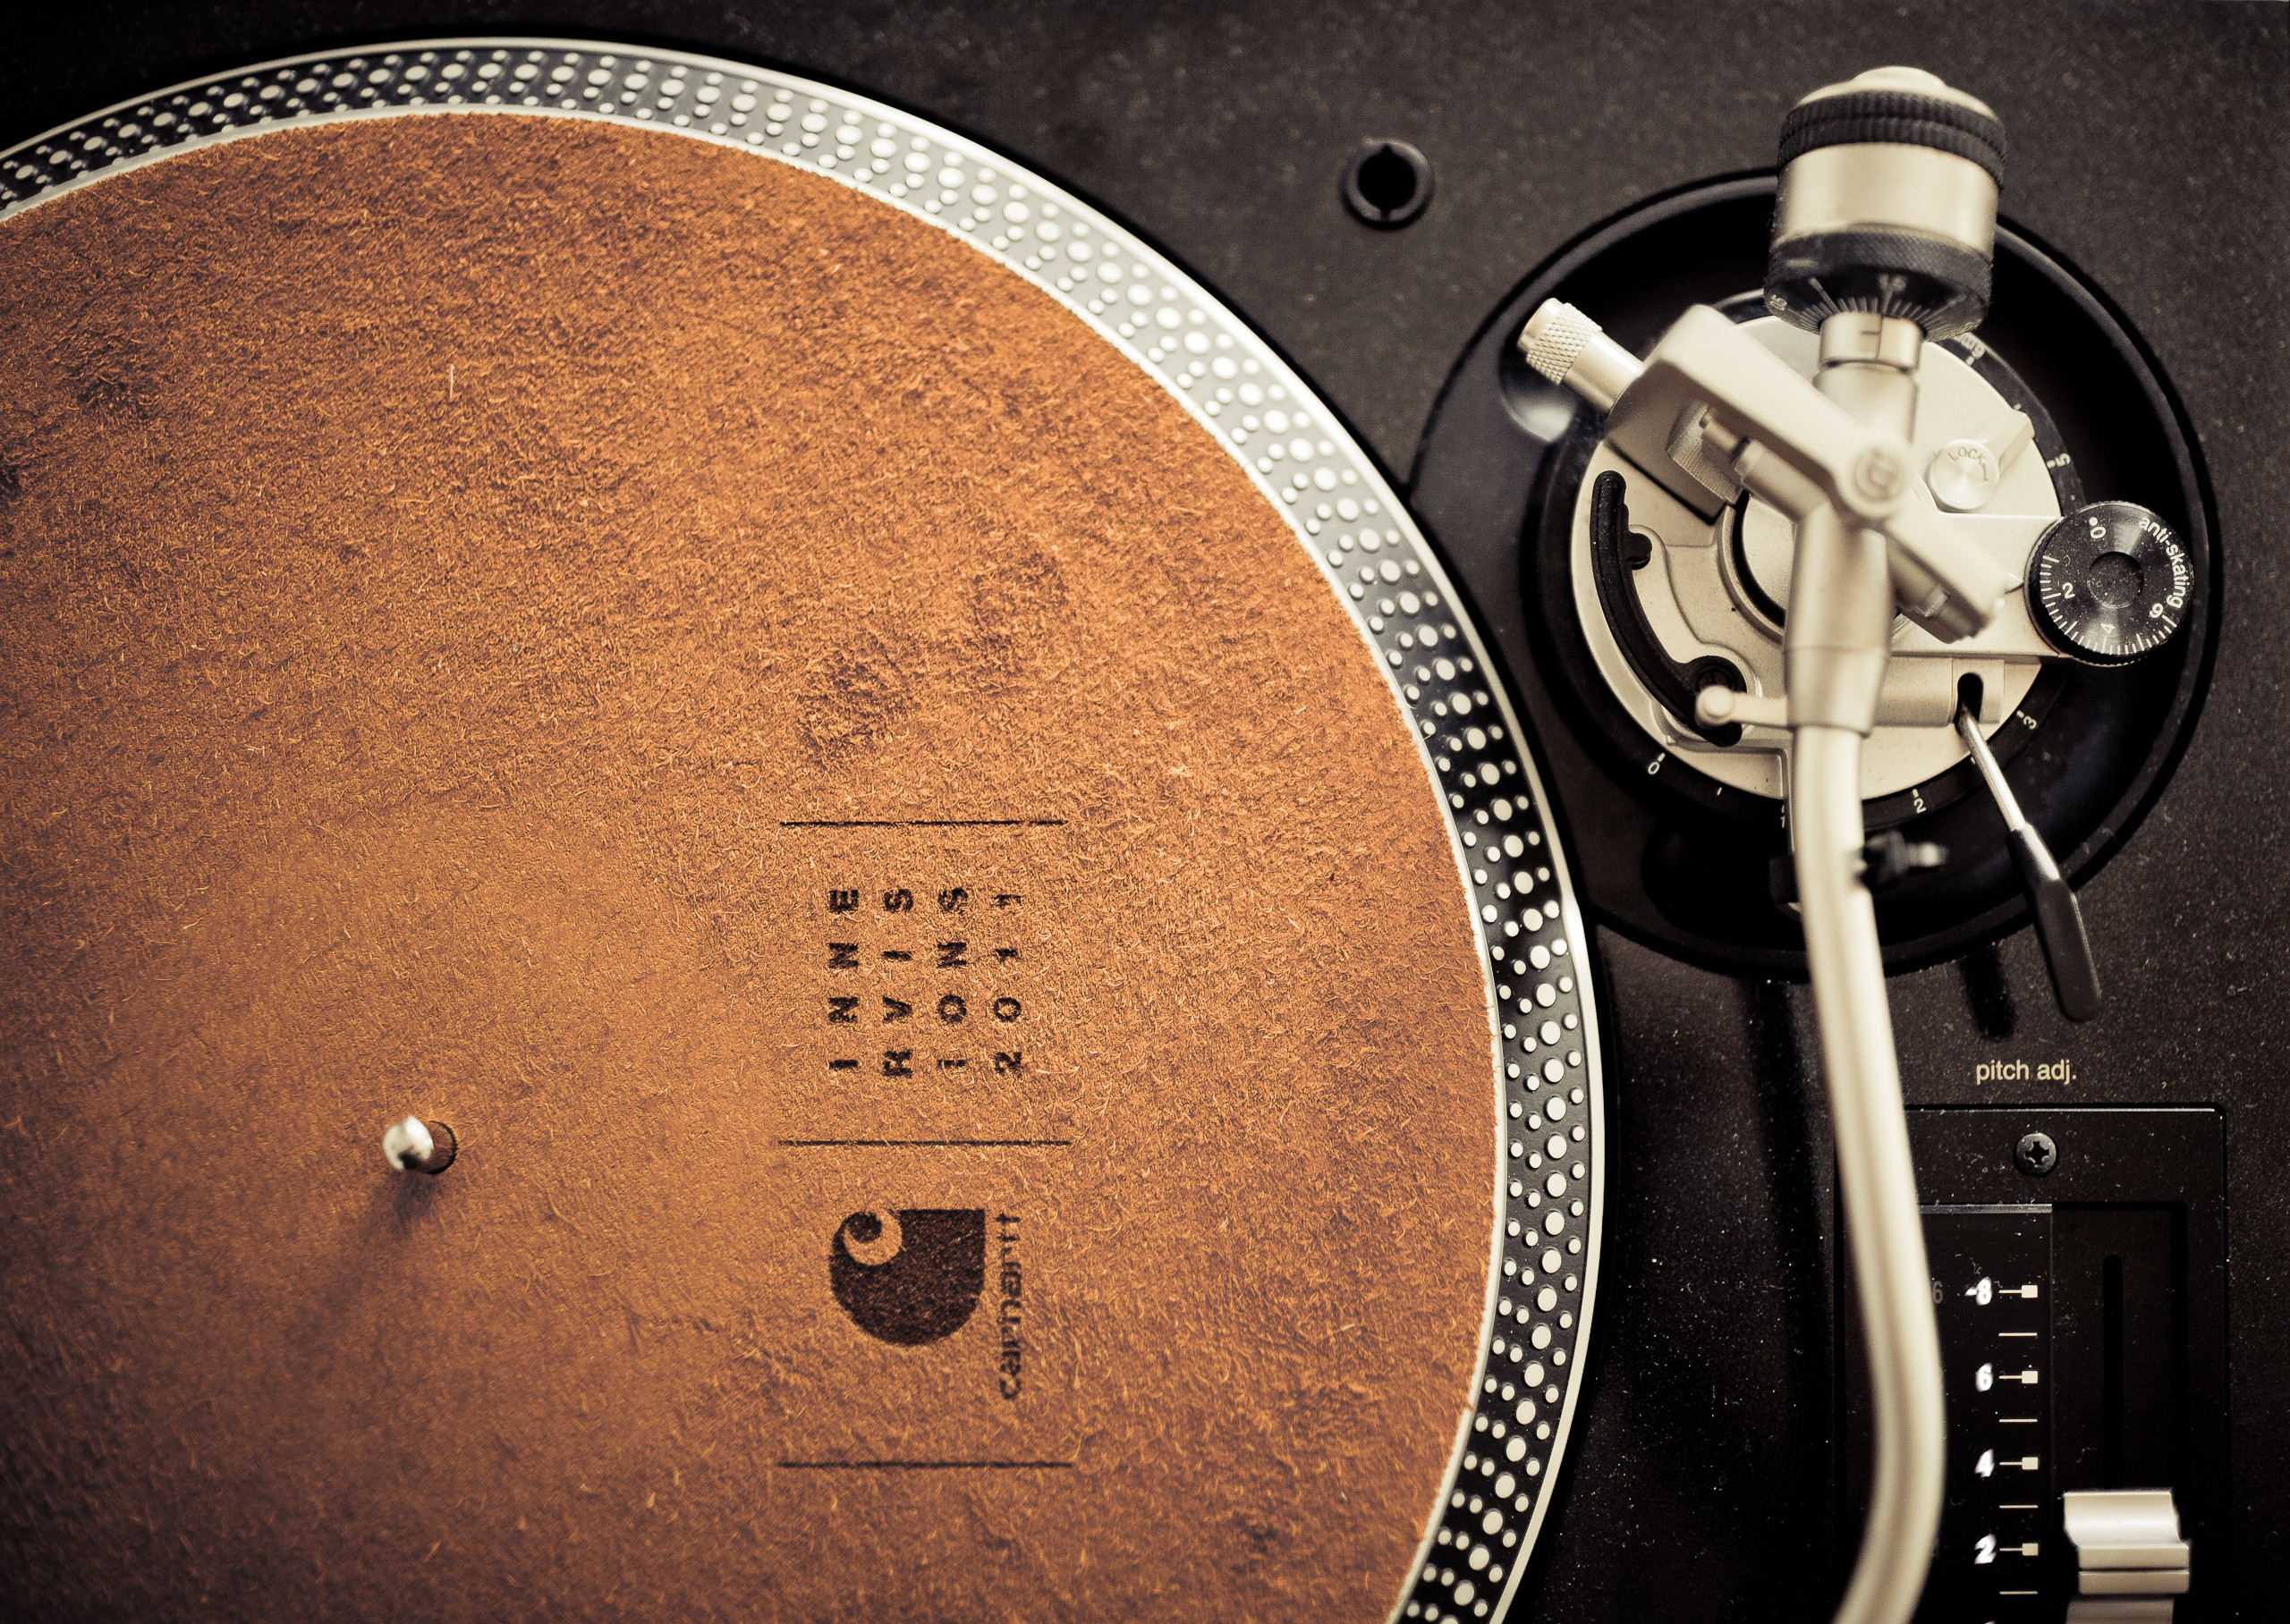 Vinyl Wallpaper 2560x1816 Music Vinyl Turntables Technics Record 2560x1816